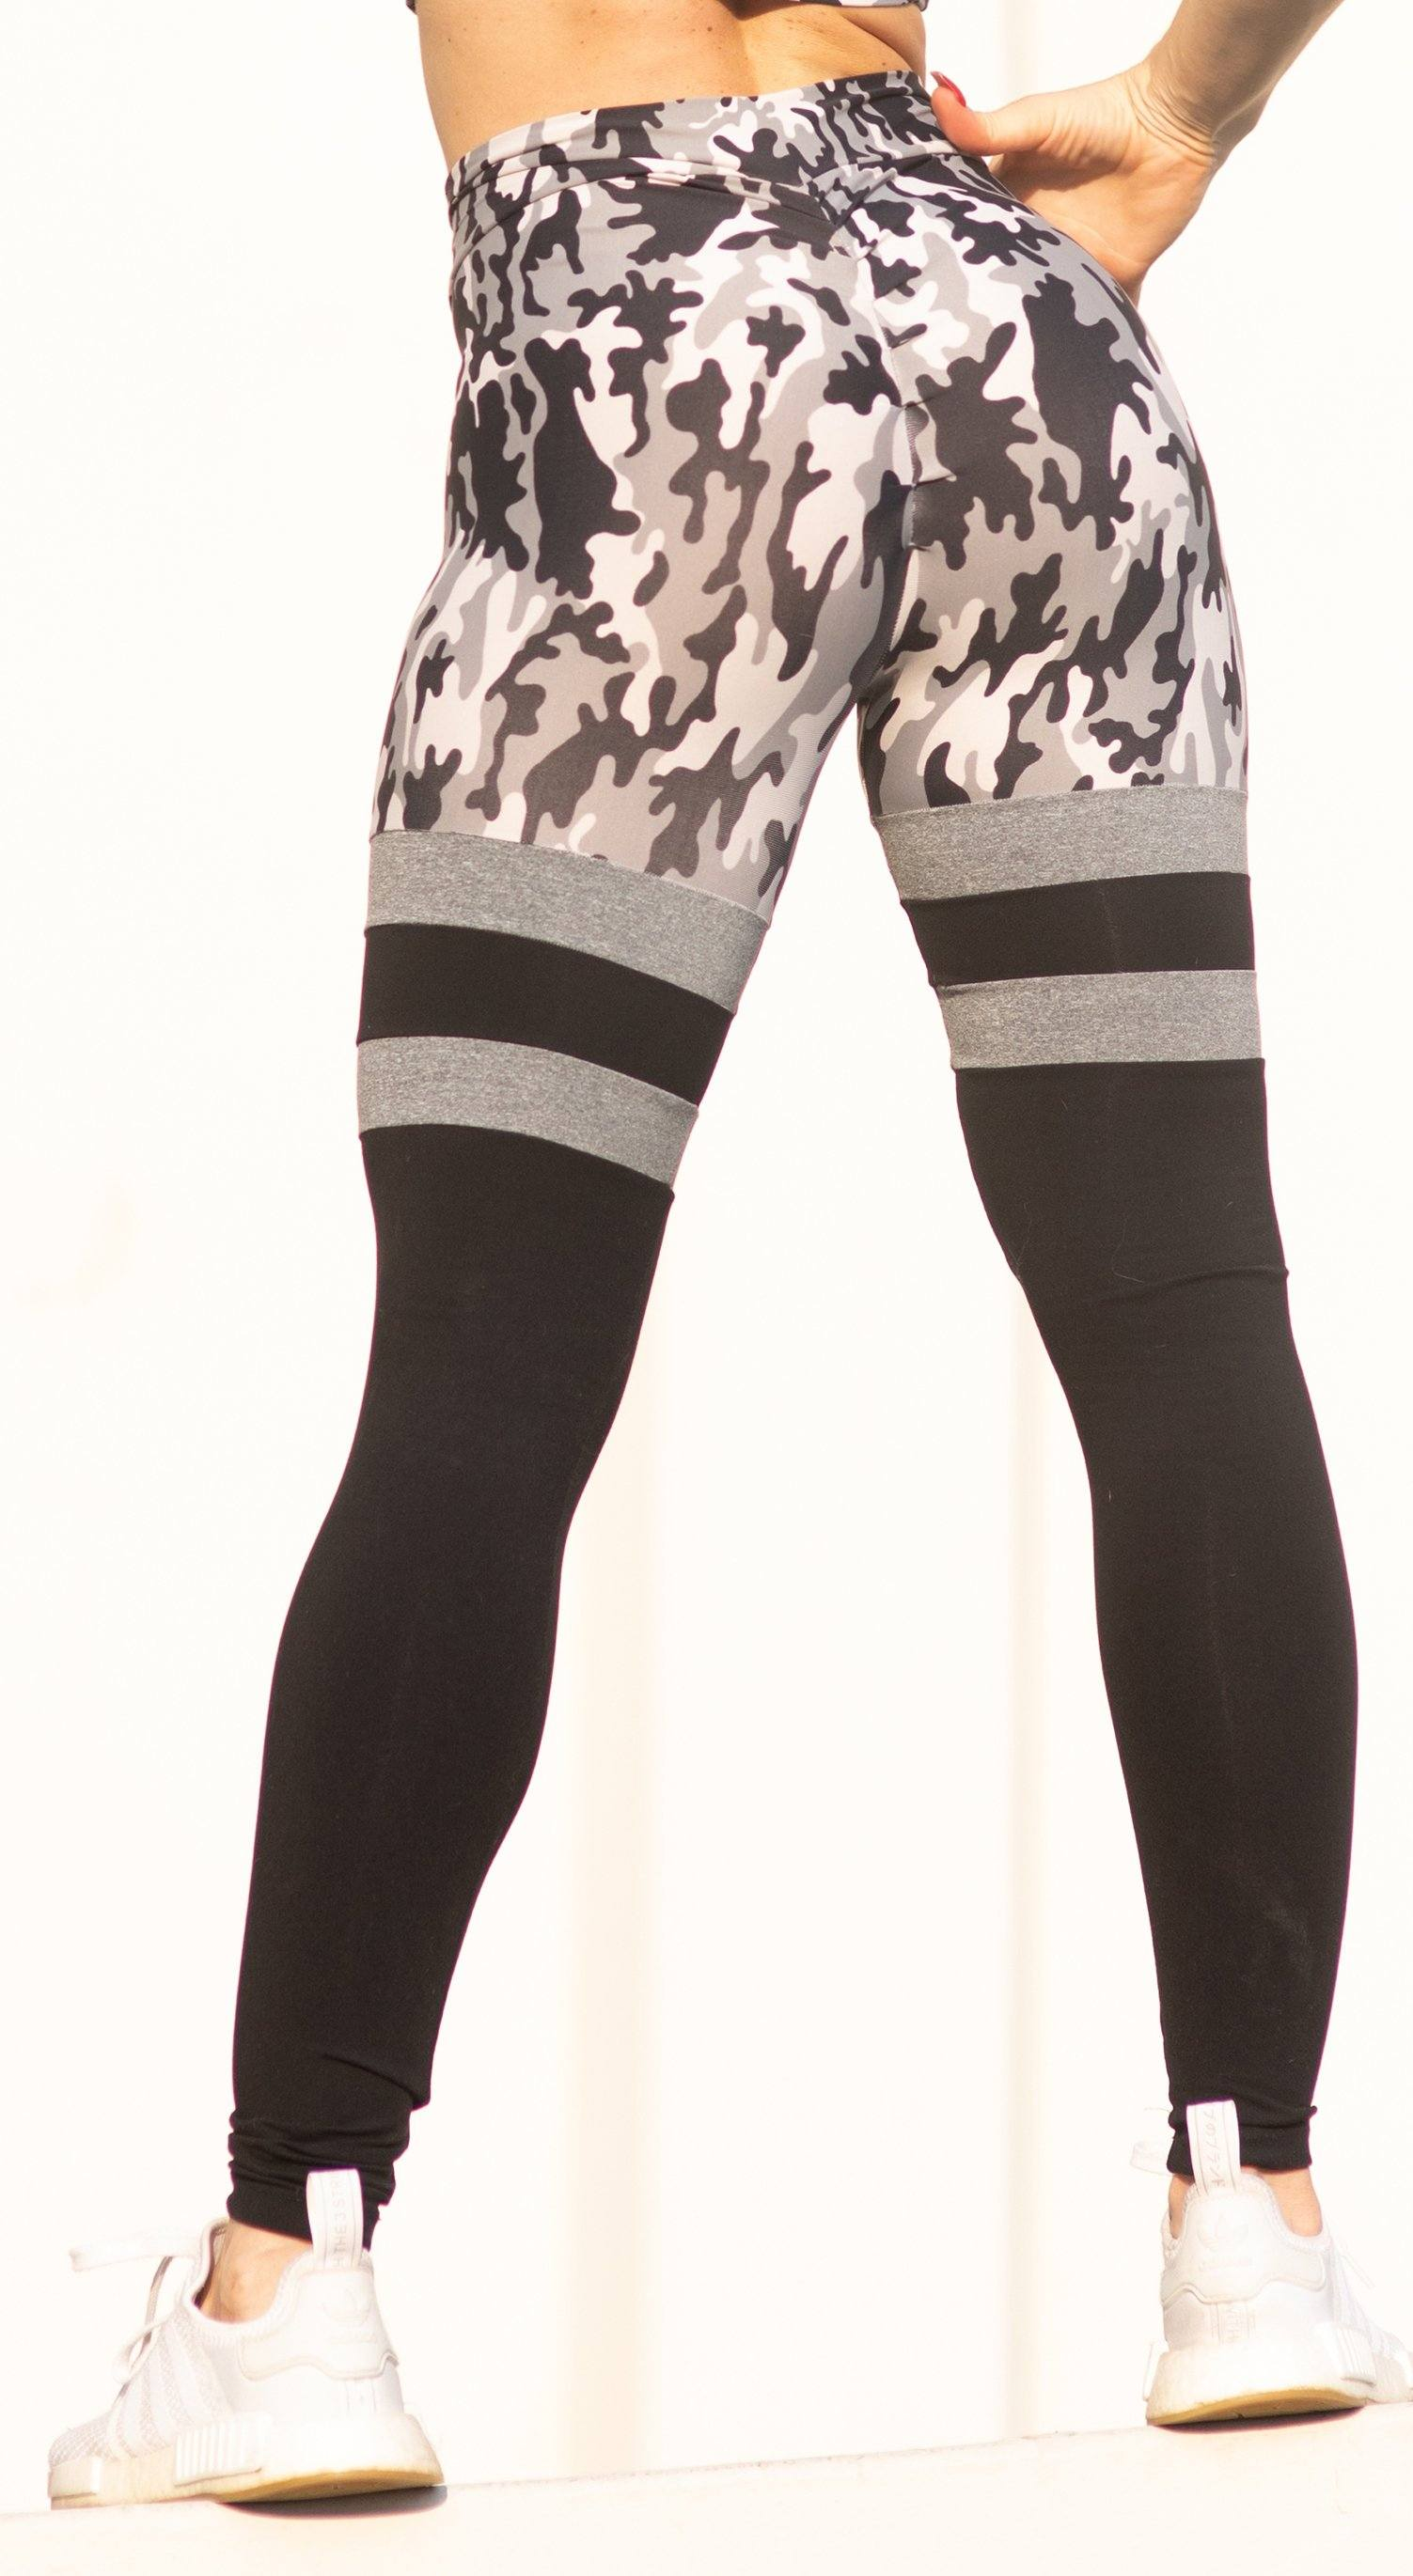 Brazilian Workout Legging - Scrunch Booty Socks Leggings Army  Gray